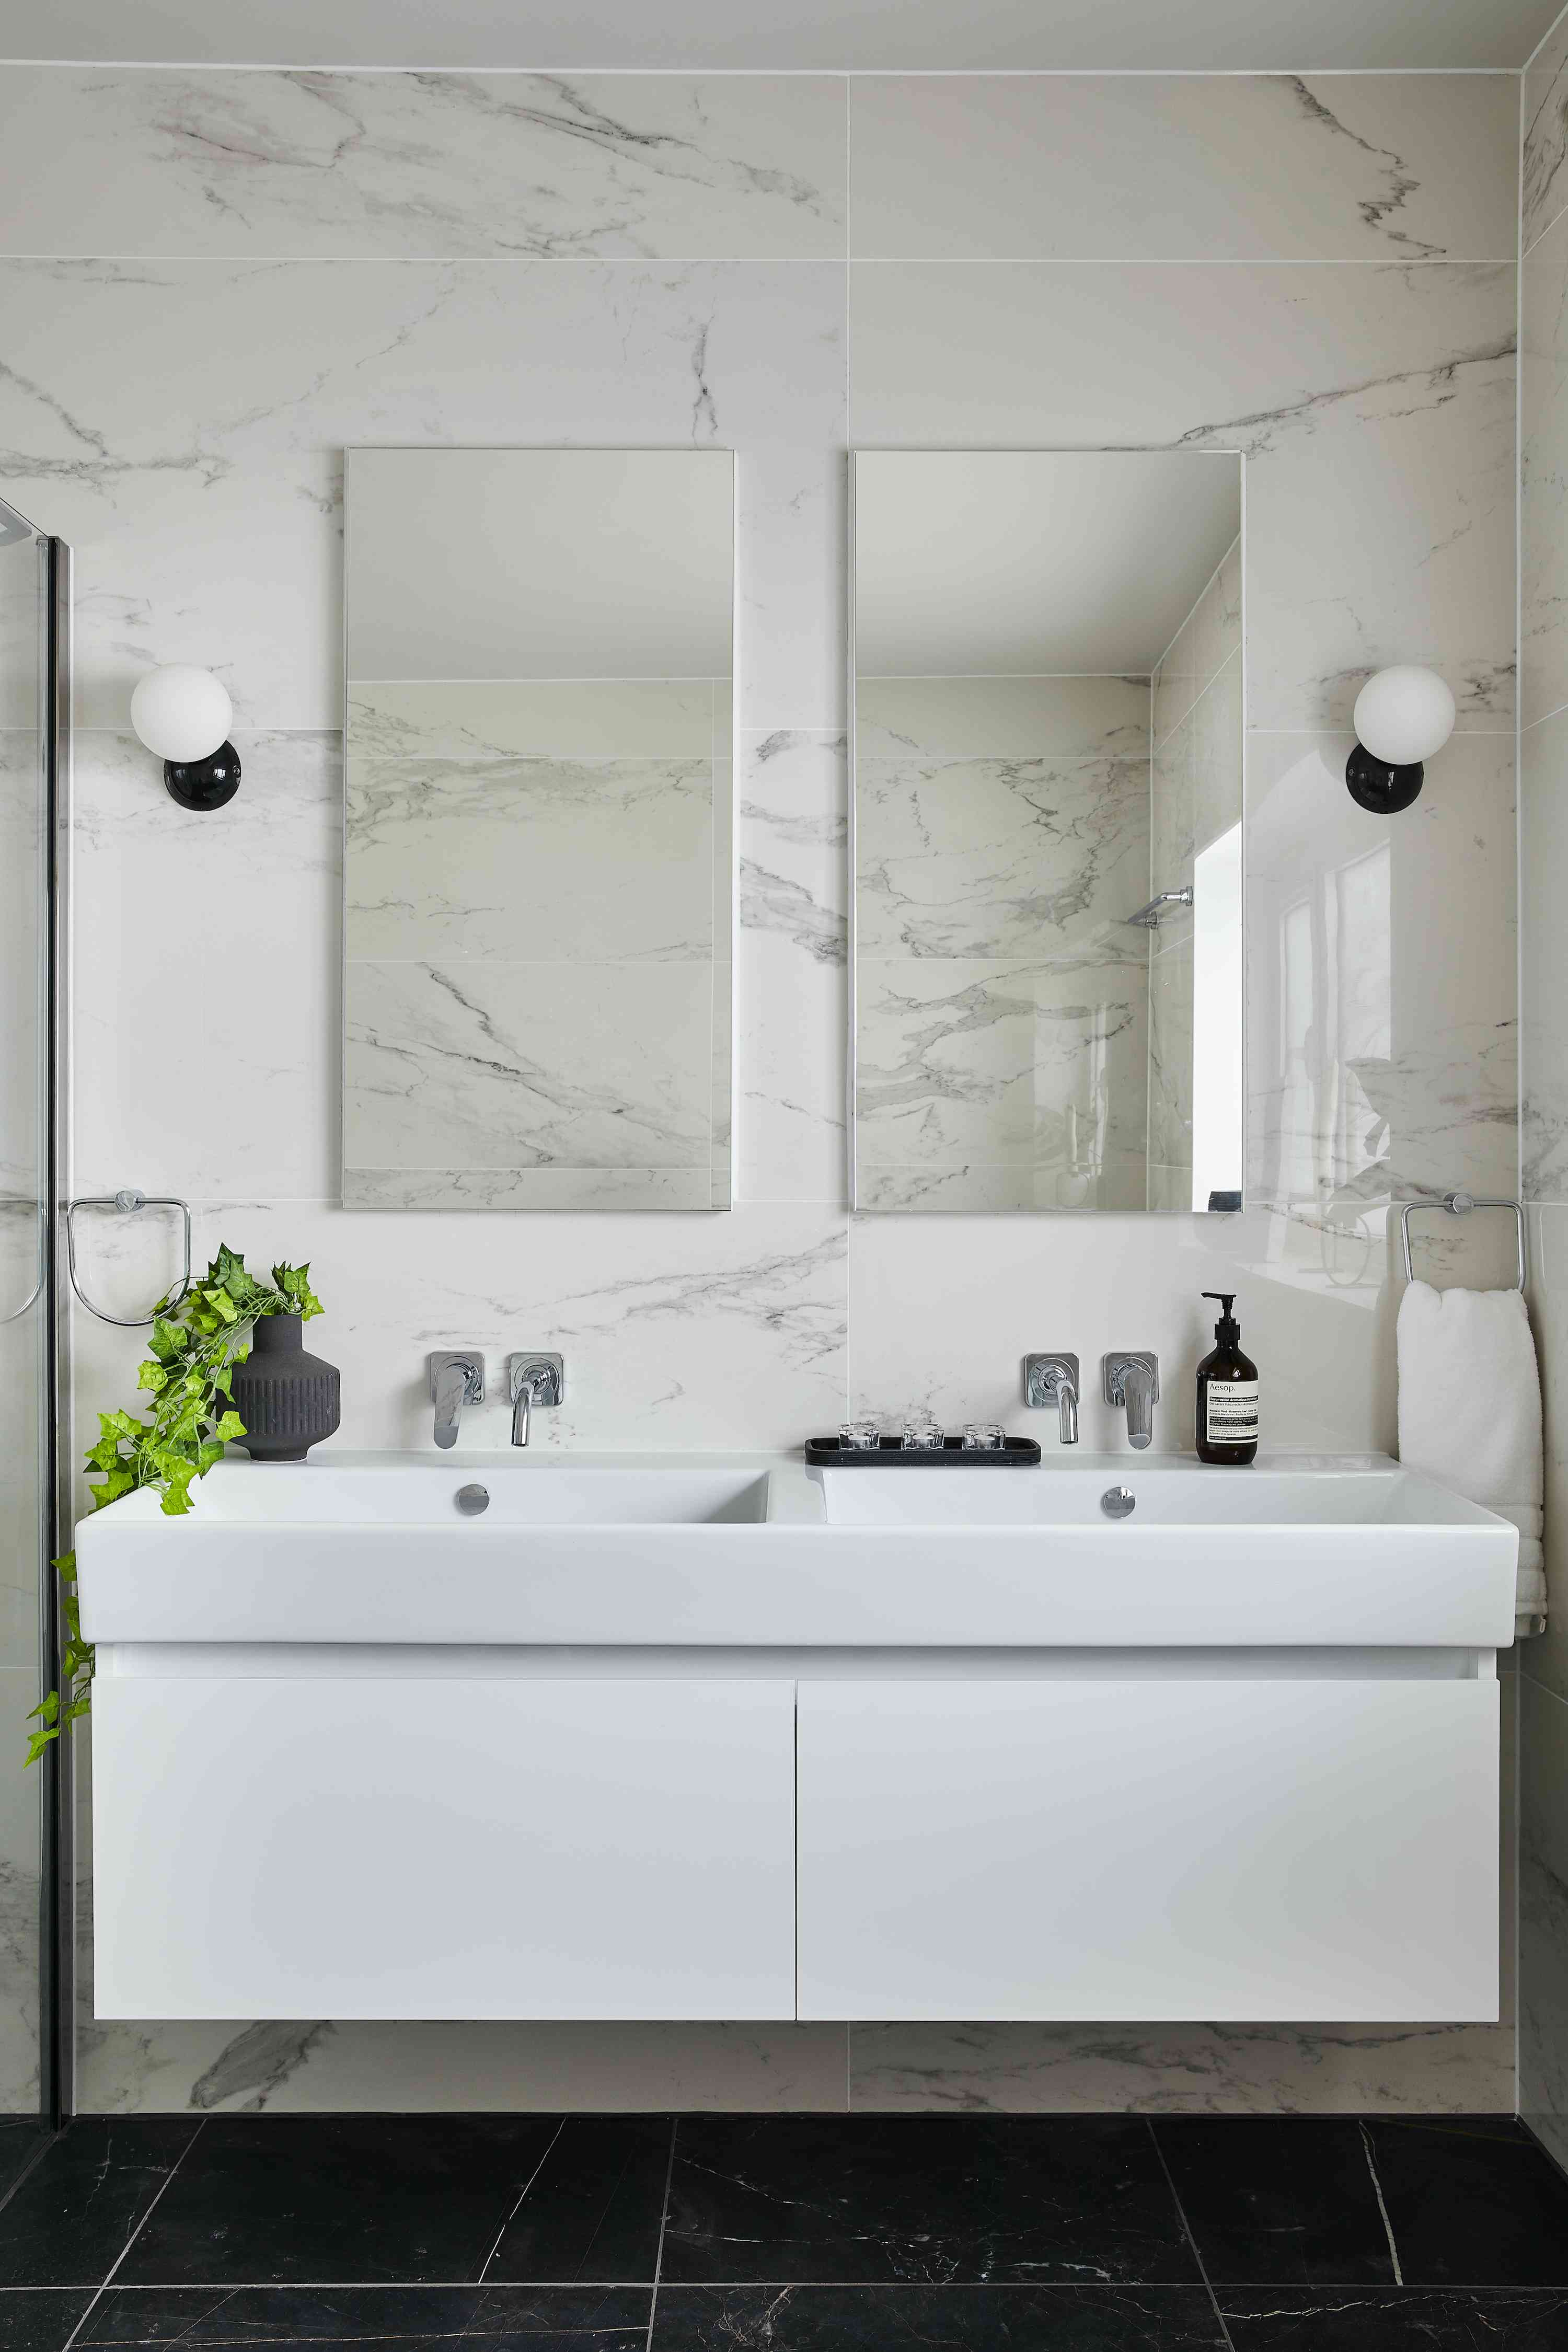 black and white bathroom with plant